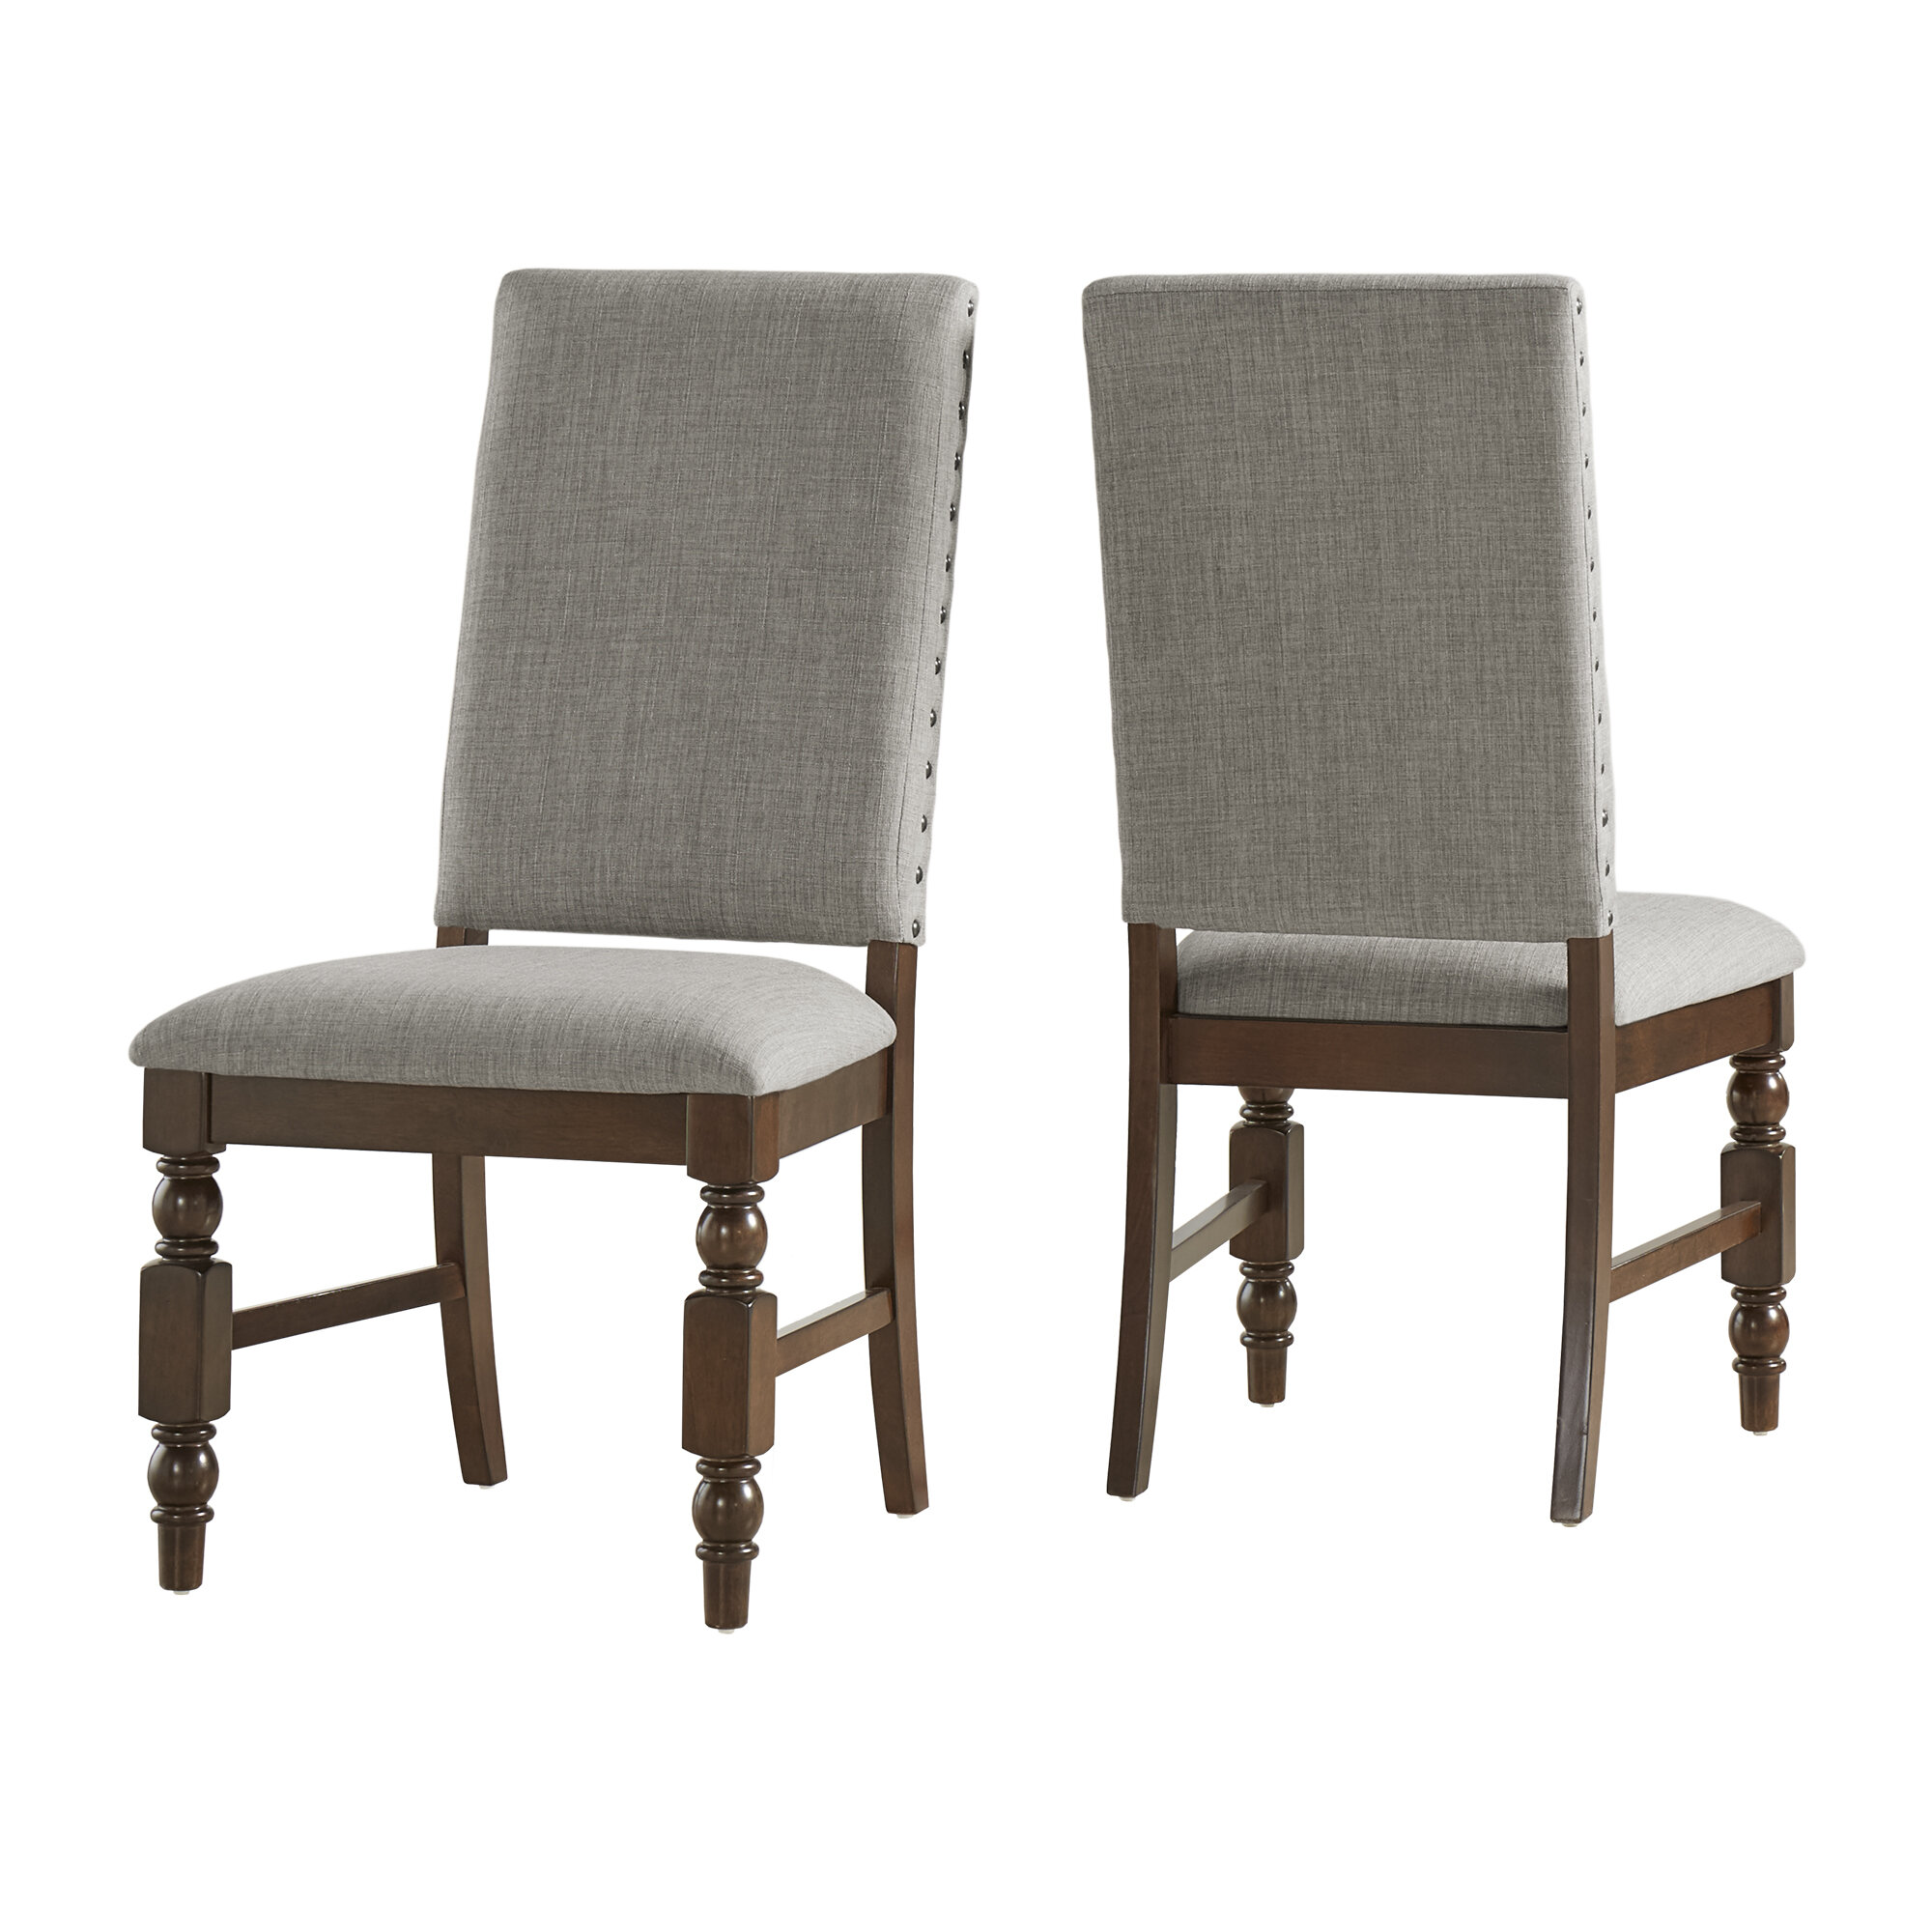 Marvelous Dublin Upholstered Dining Chair Caraccident5 Cool Chair Designs And Ideas Caraccident5Info